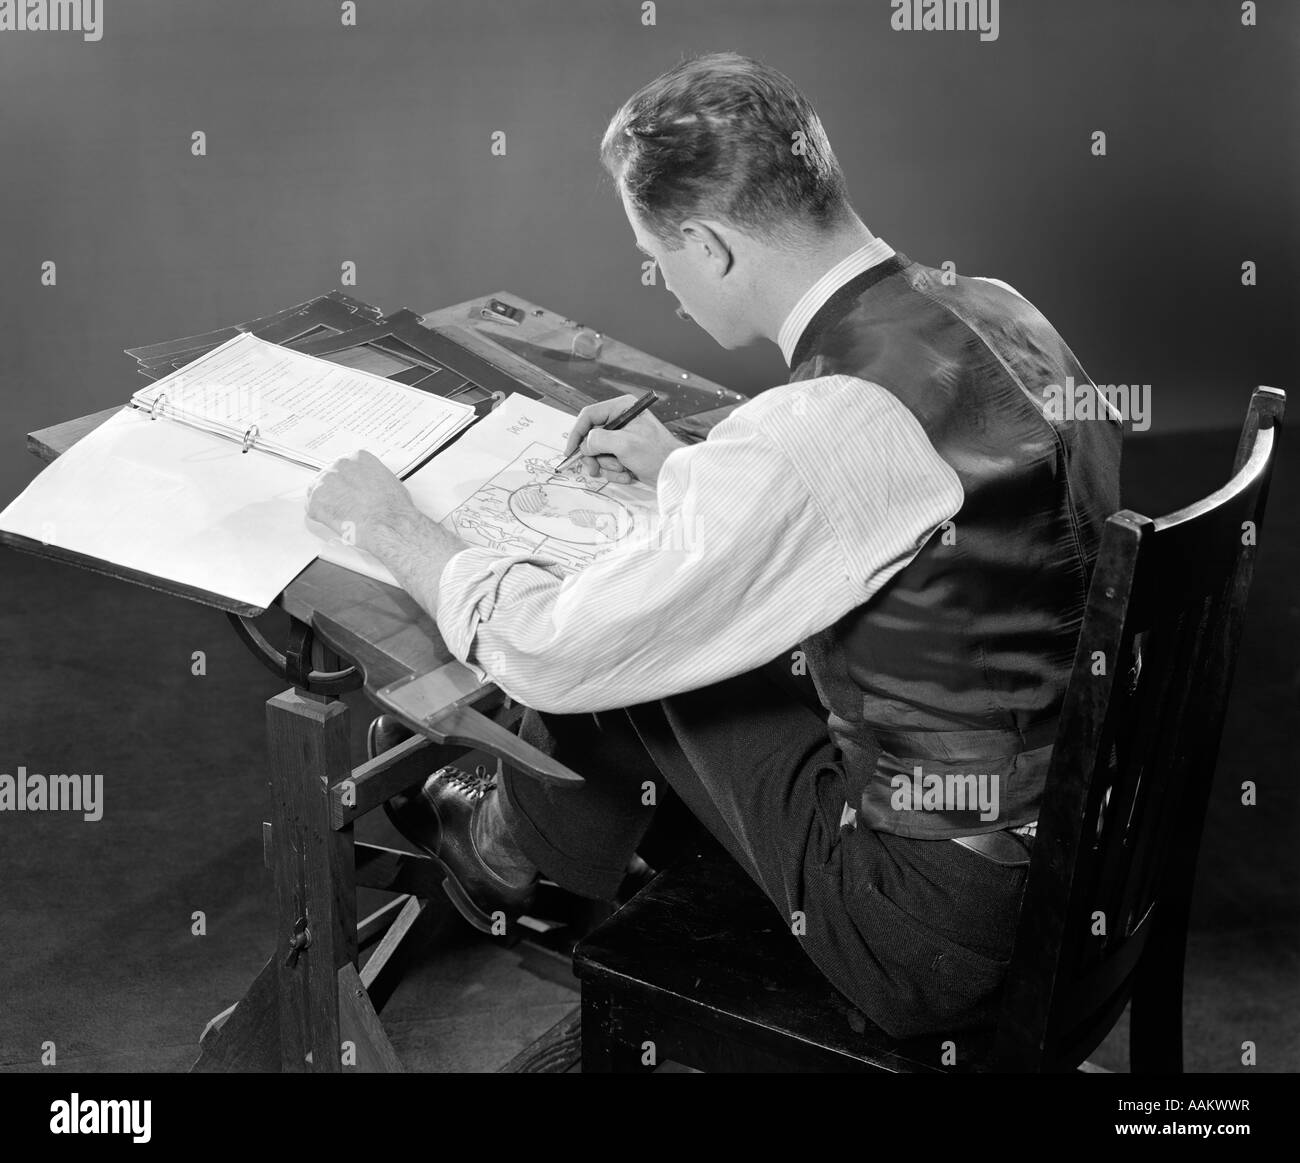 1930s 1940s REAR HIGH ANGLE BACK VIEW MAN SEATED AT DRAFTING TABLE WORKING  DRAWING   Stock